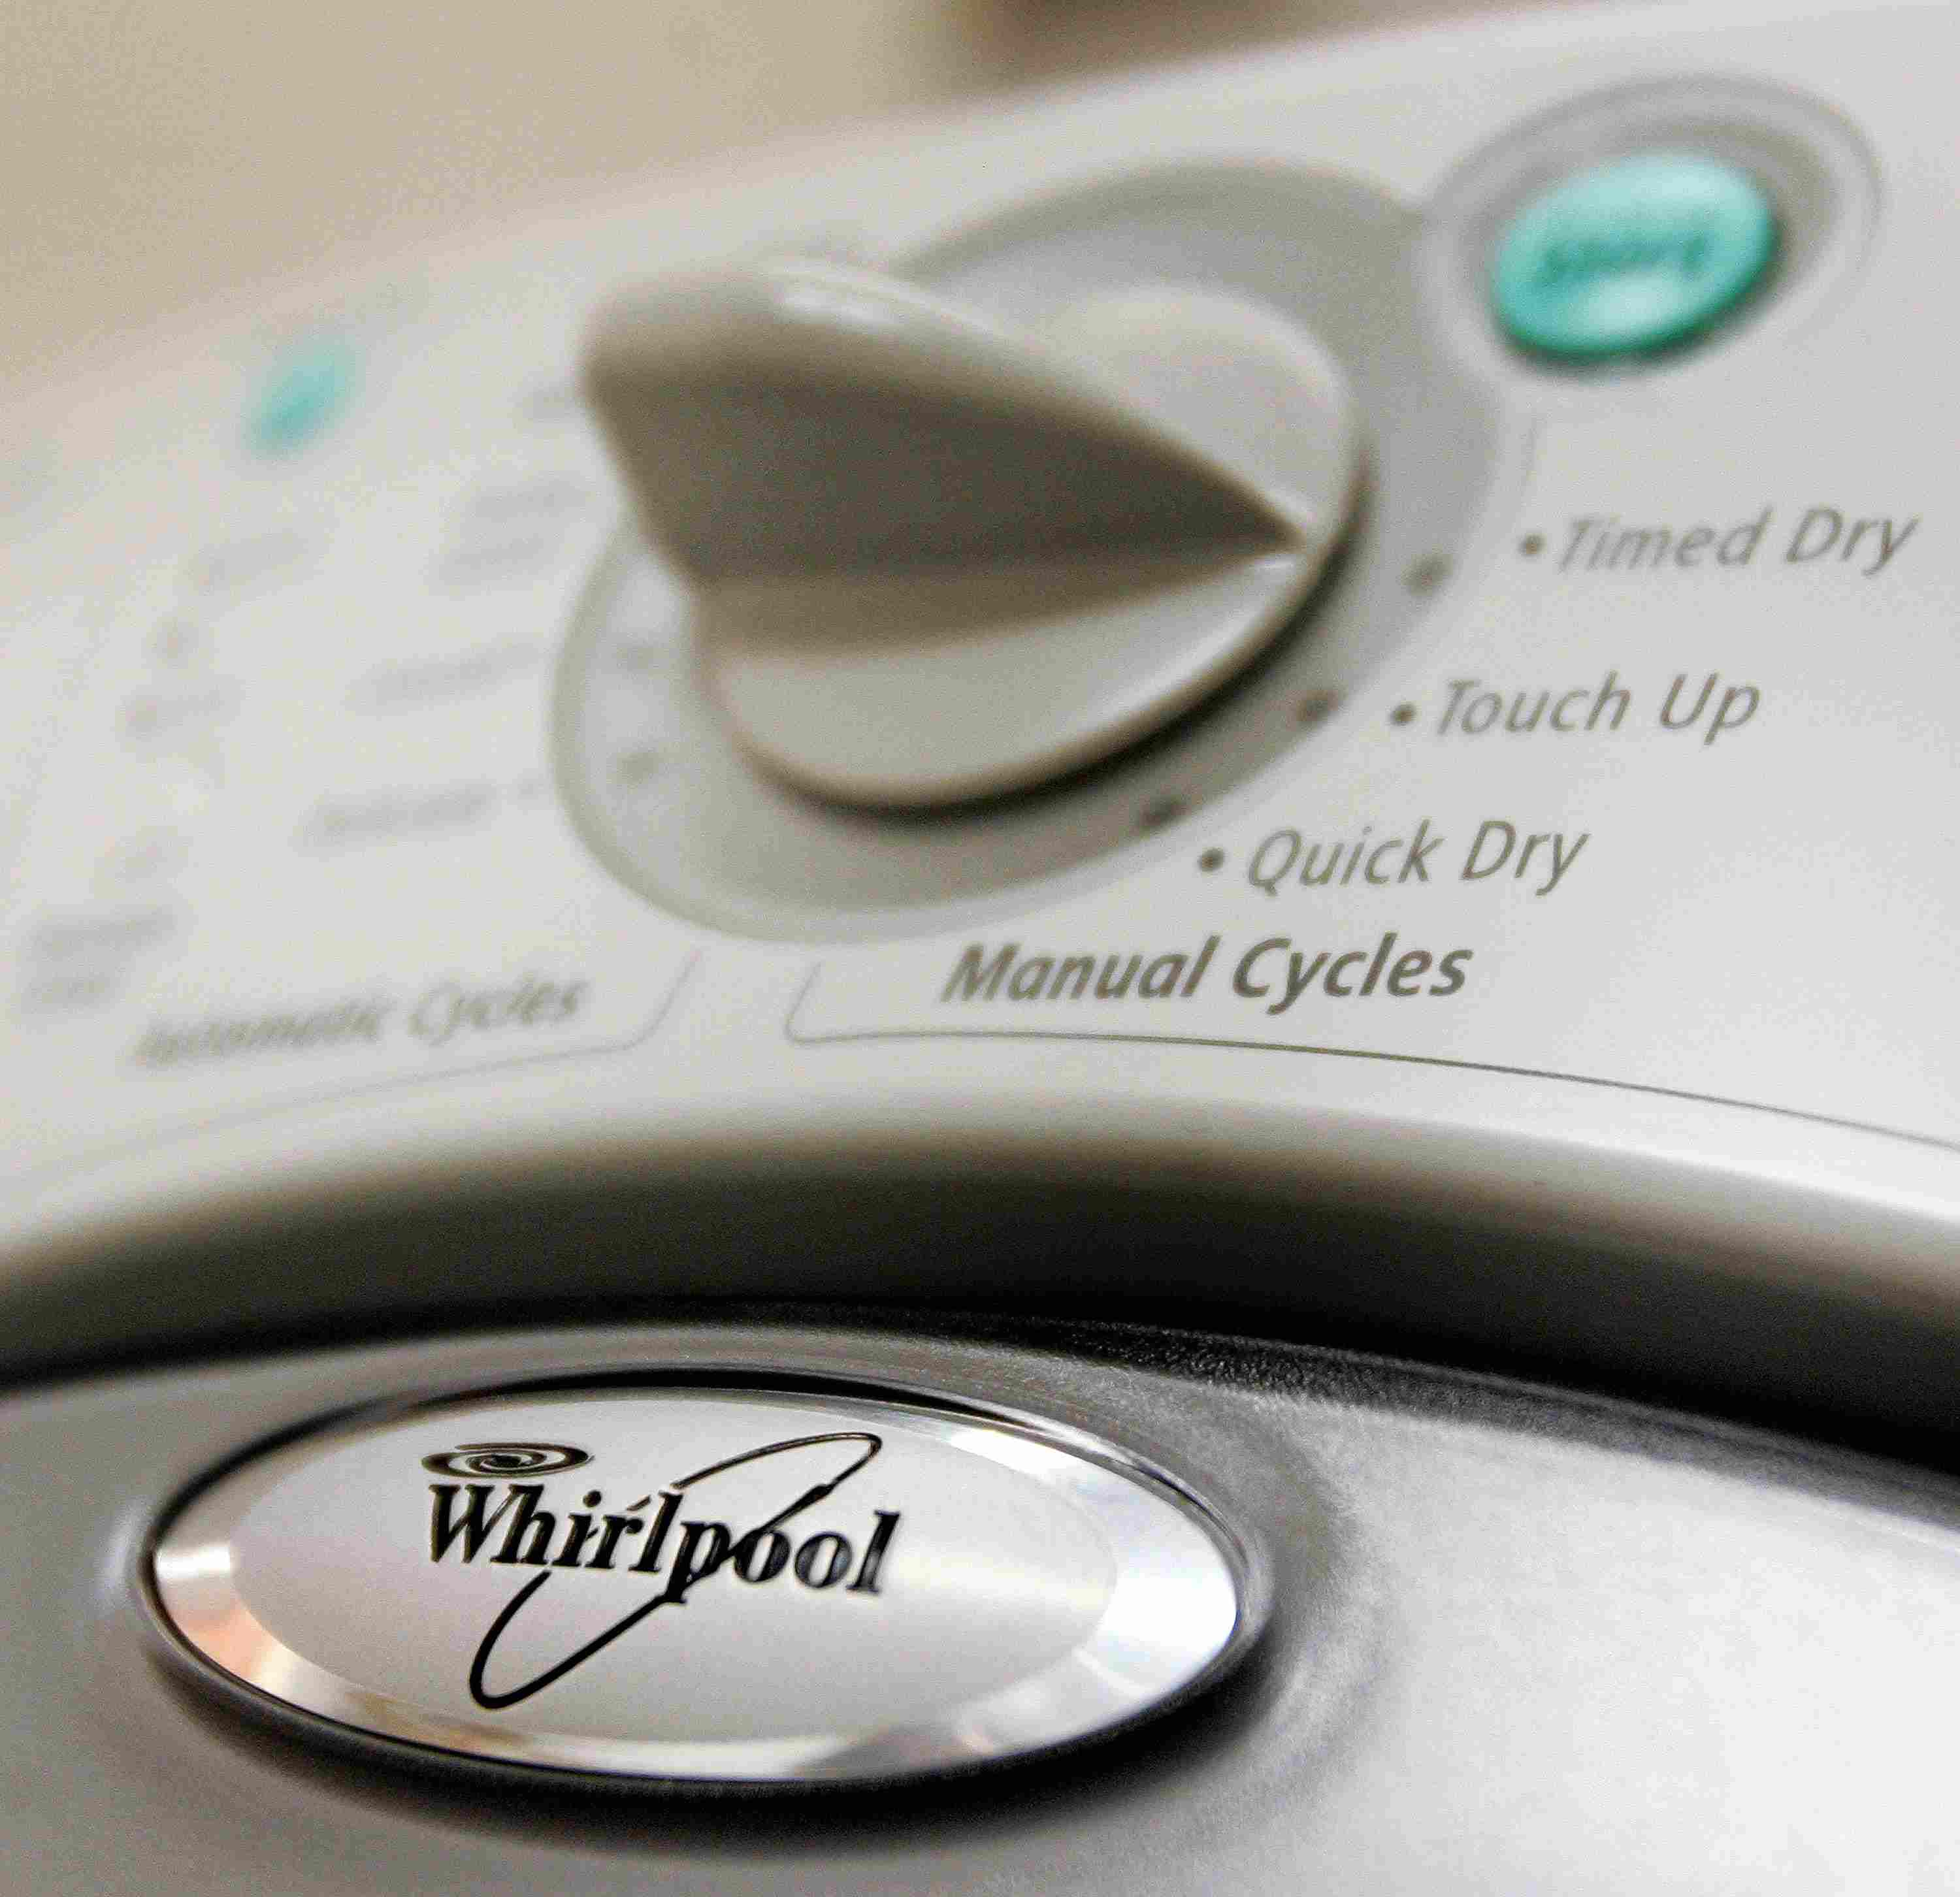 9 Frugal Laundry Tips To Save Money